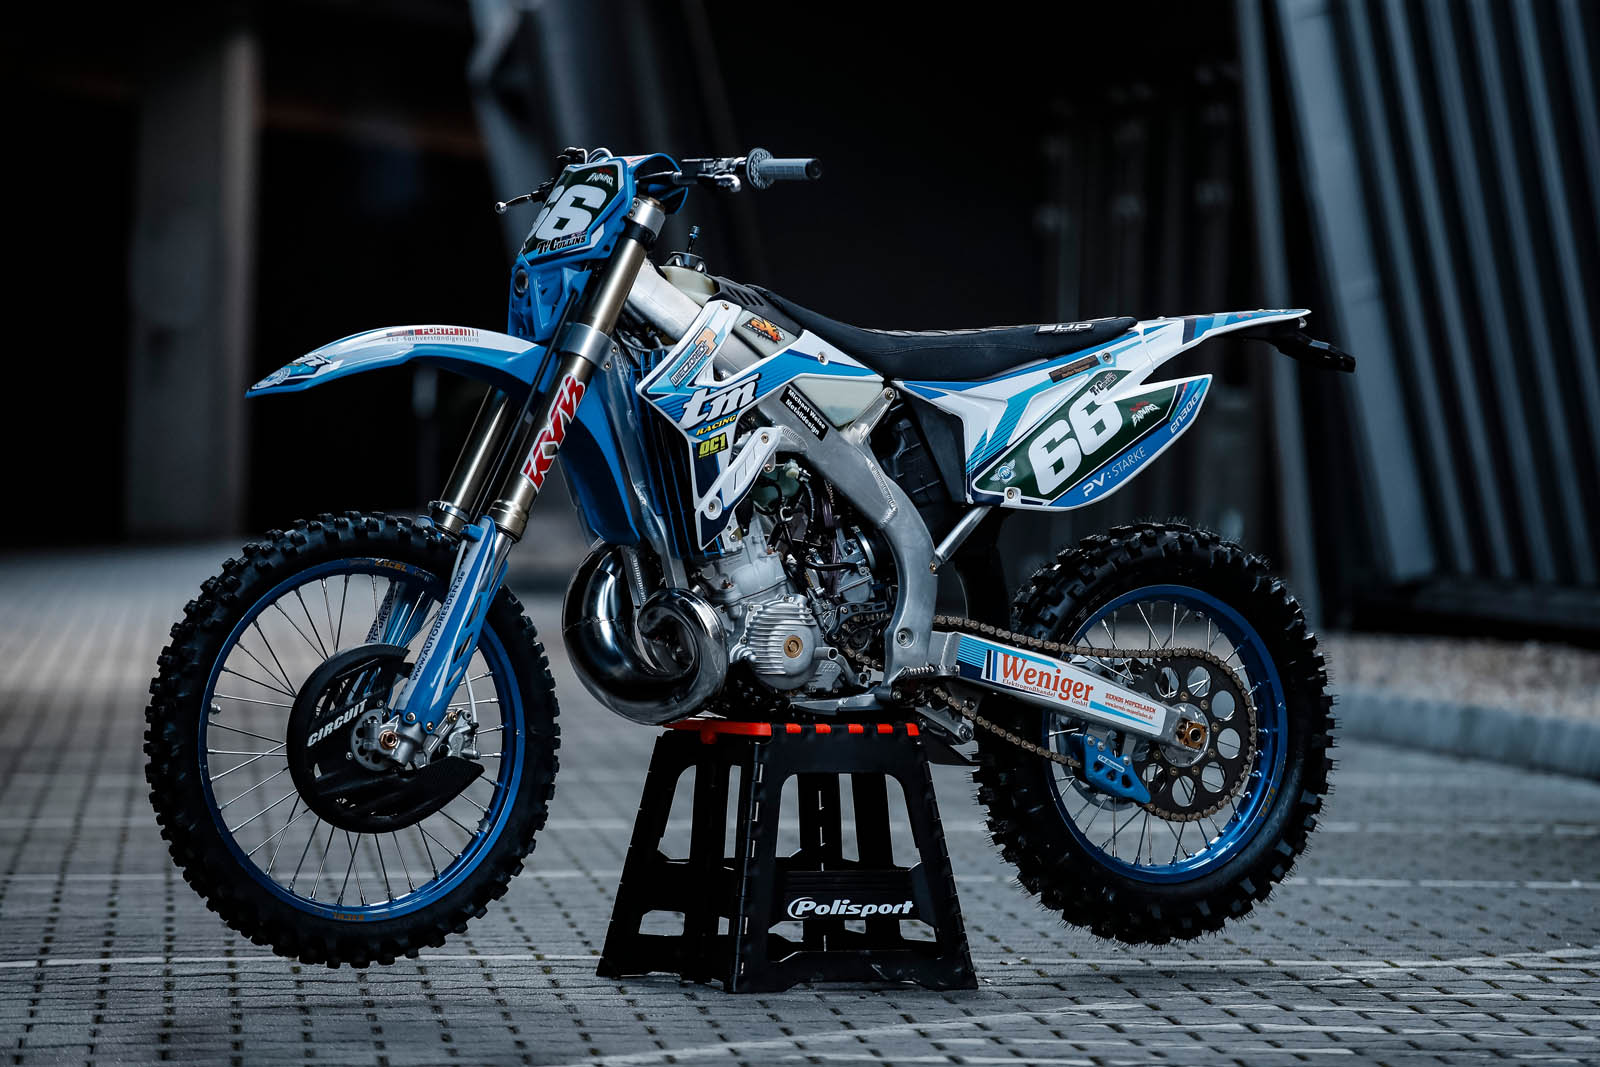 My ride: TY Cullins' SuperEnduro TM Racing 300cc two-stroke